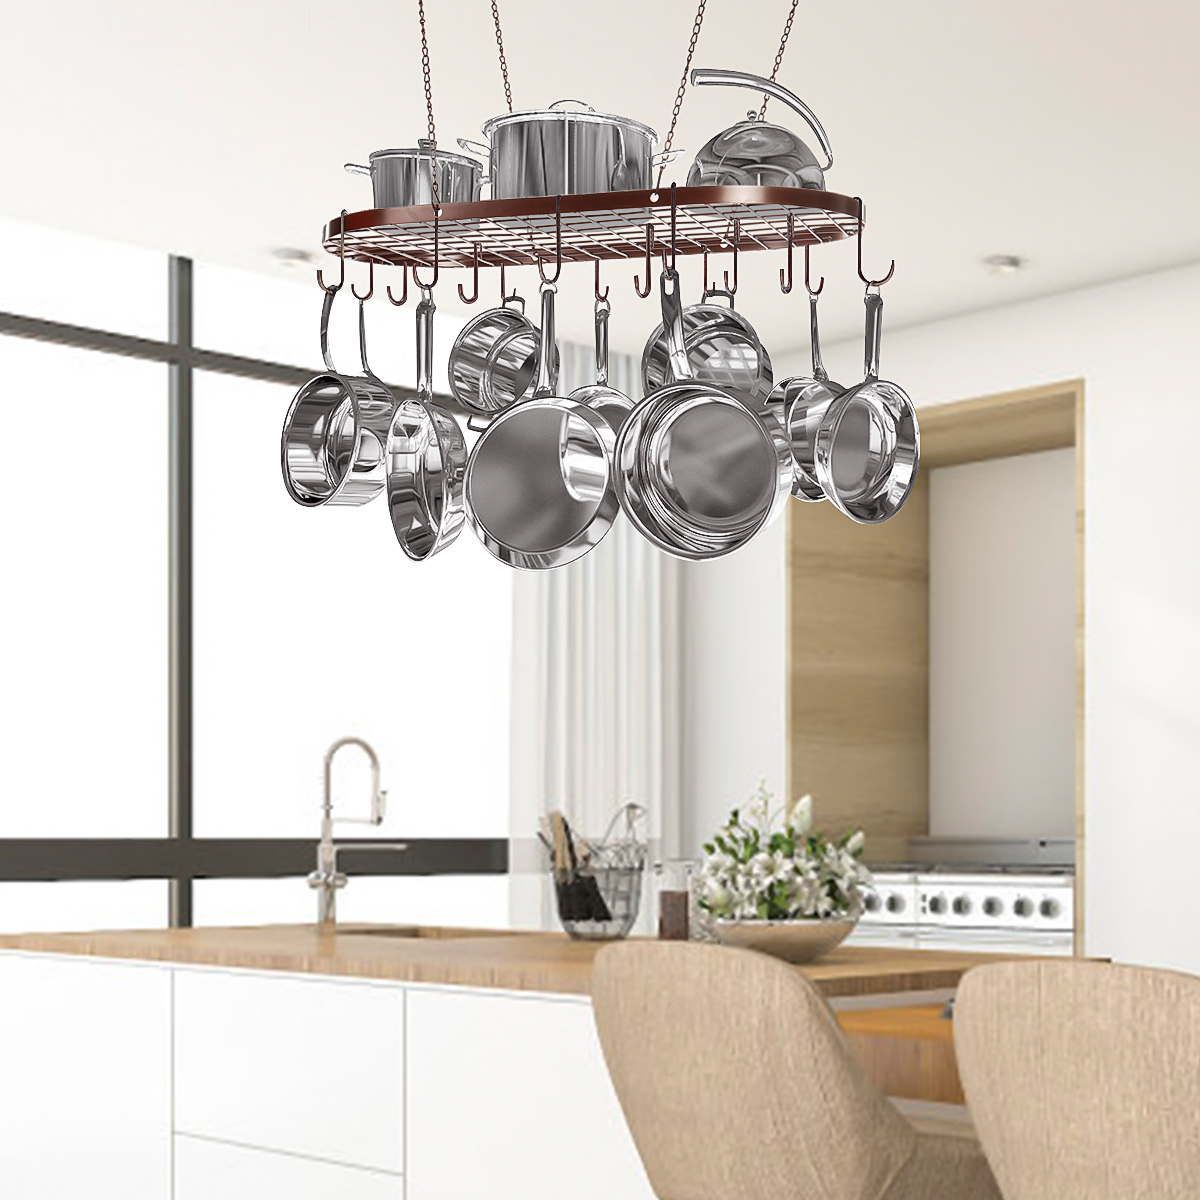 Image of: 33 Black Bronze Hanging Pot Pan Rack Decorative Oval Cookware Storage Rack Holder Ceiling Cookware Shelf With 15 Hooks For Kitchen Cookware Storage Walmart Com Walmart Com